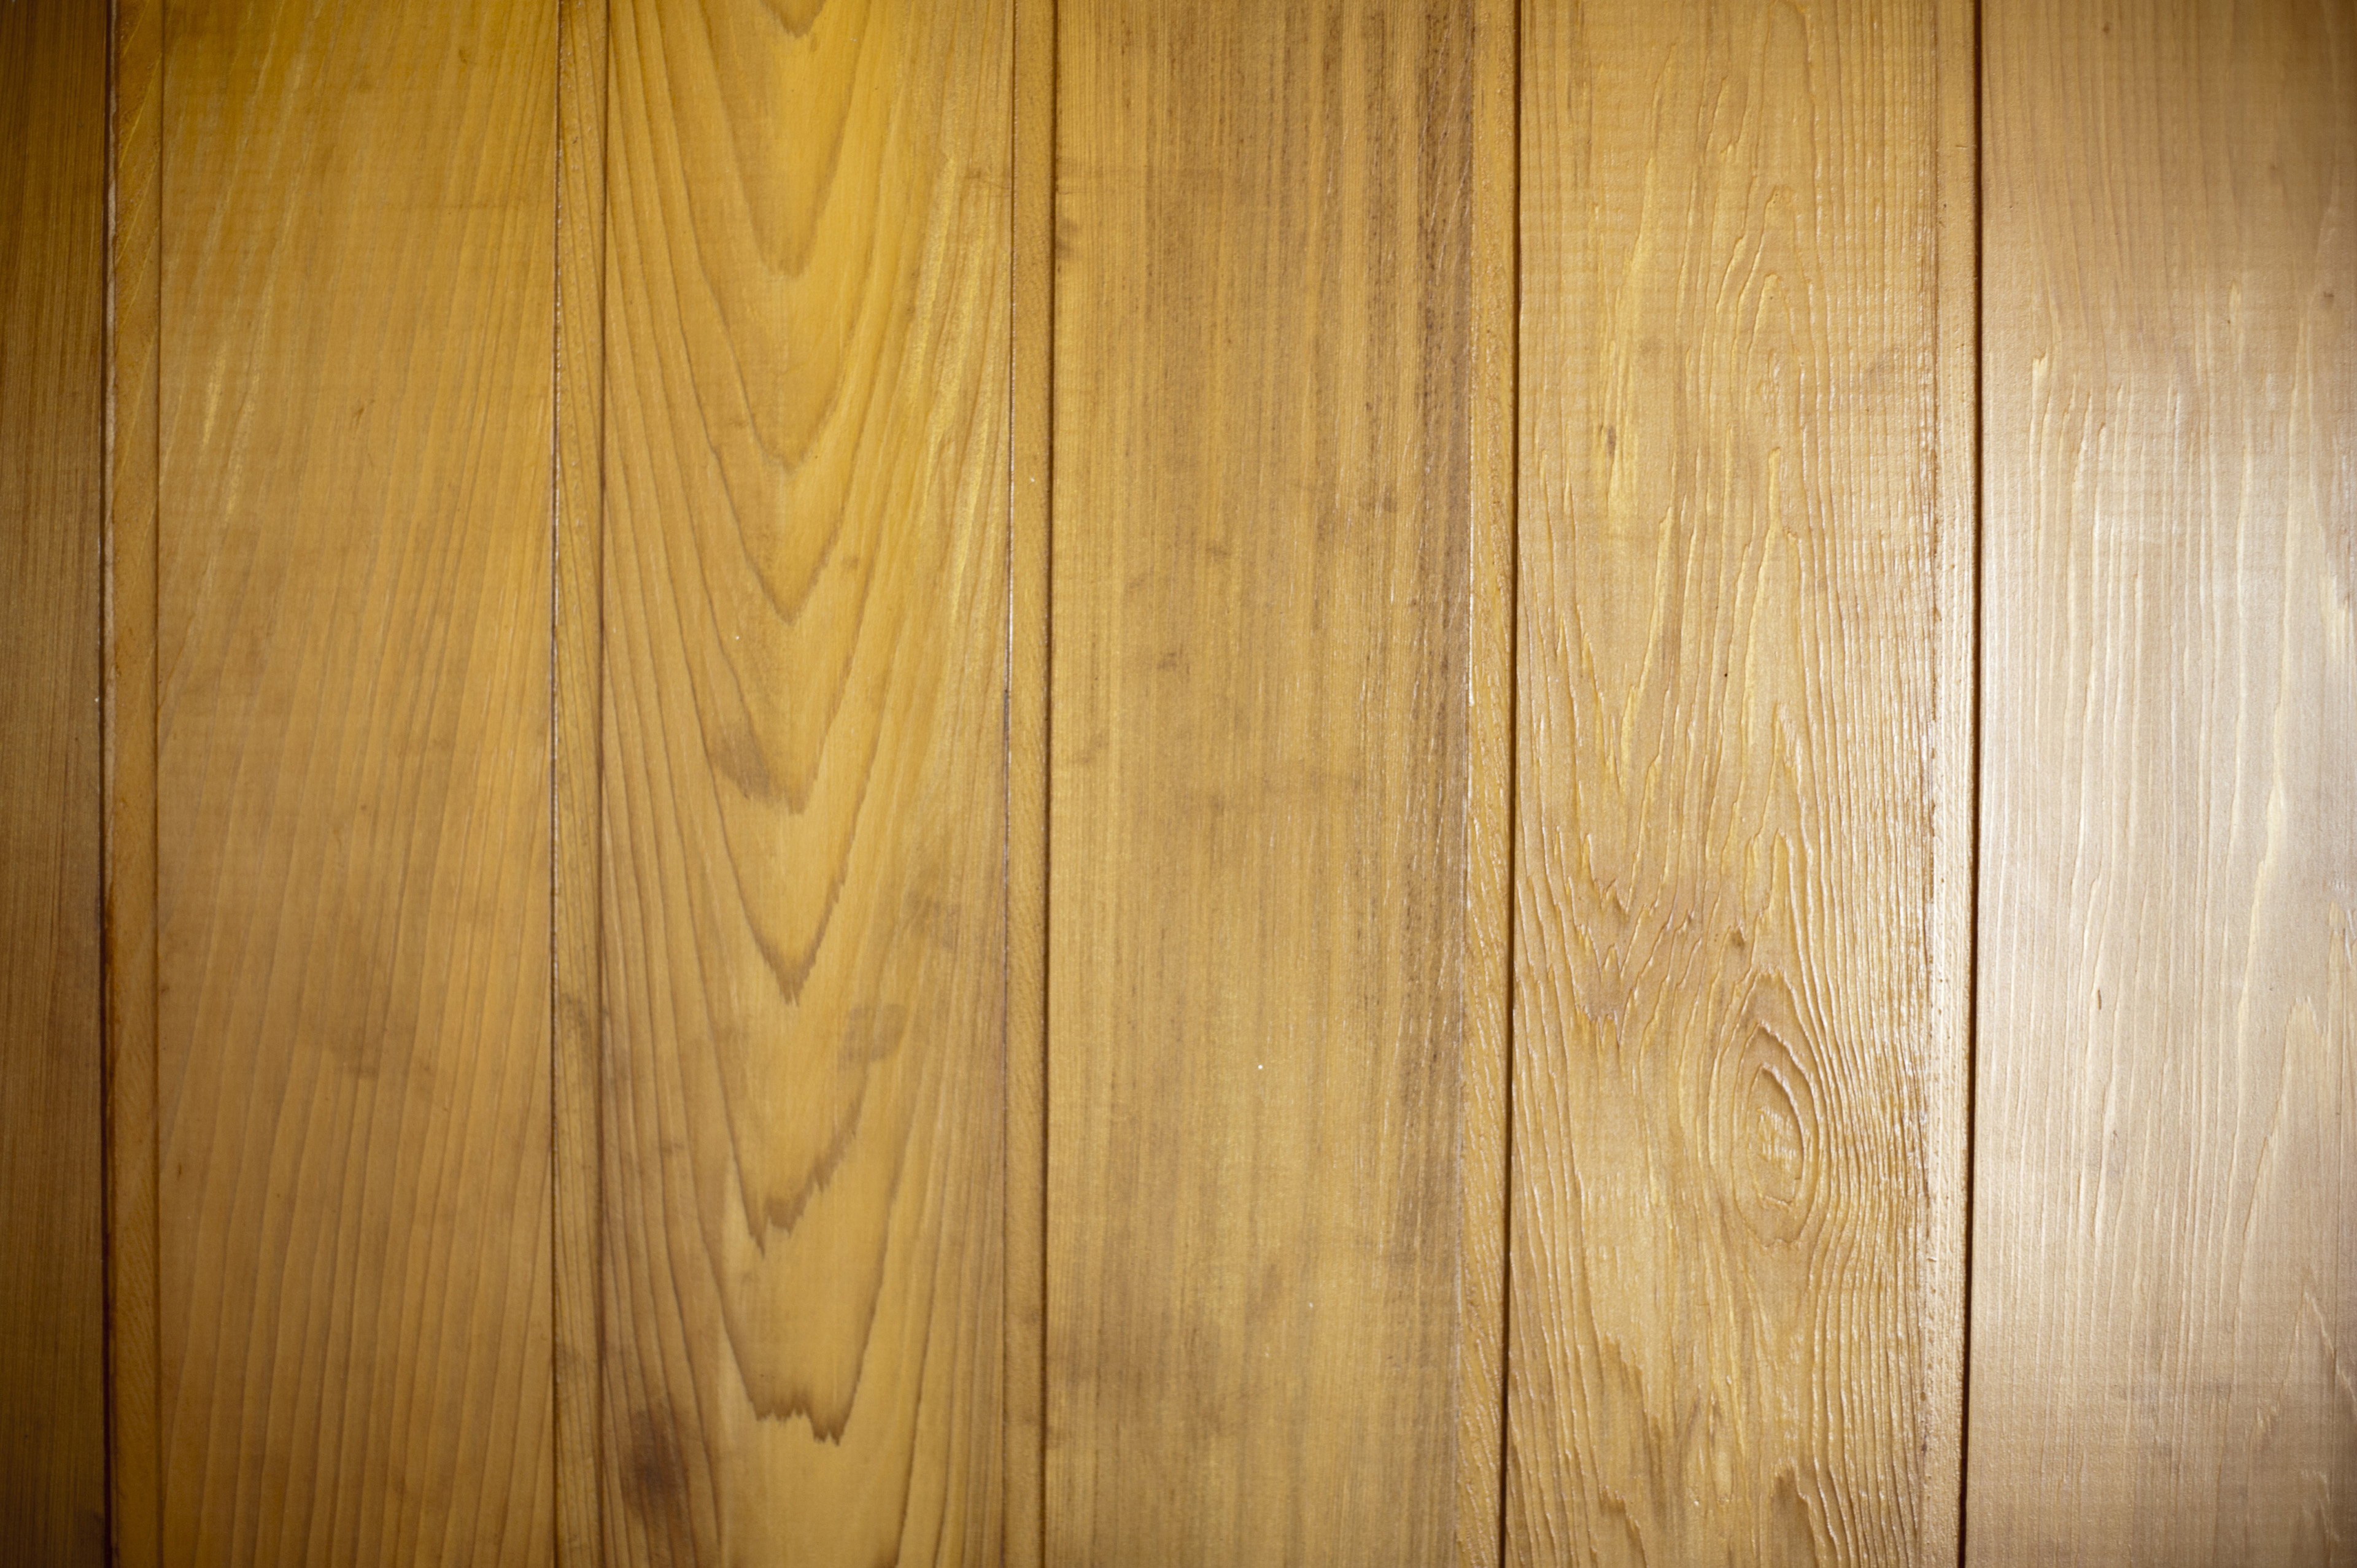 Brown polished wood panelling made of horizontal wall mounted battens, close-up